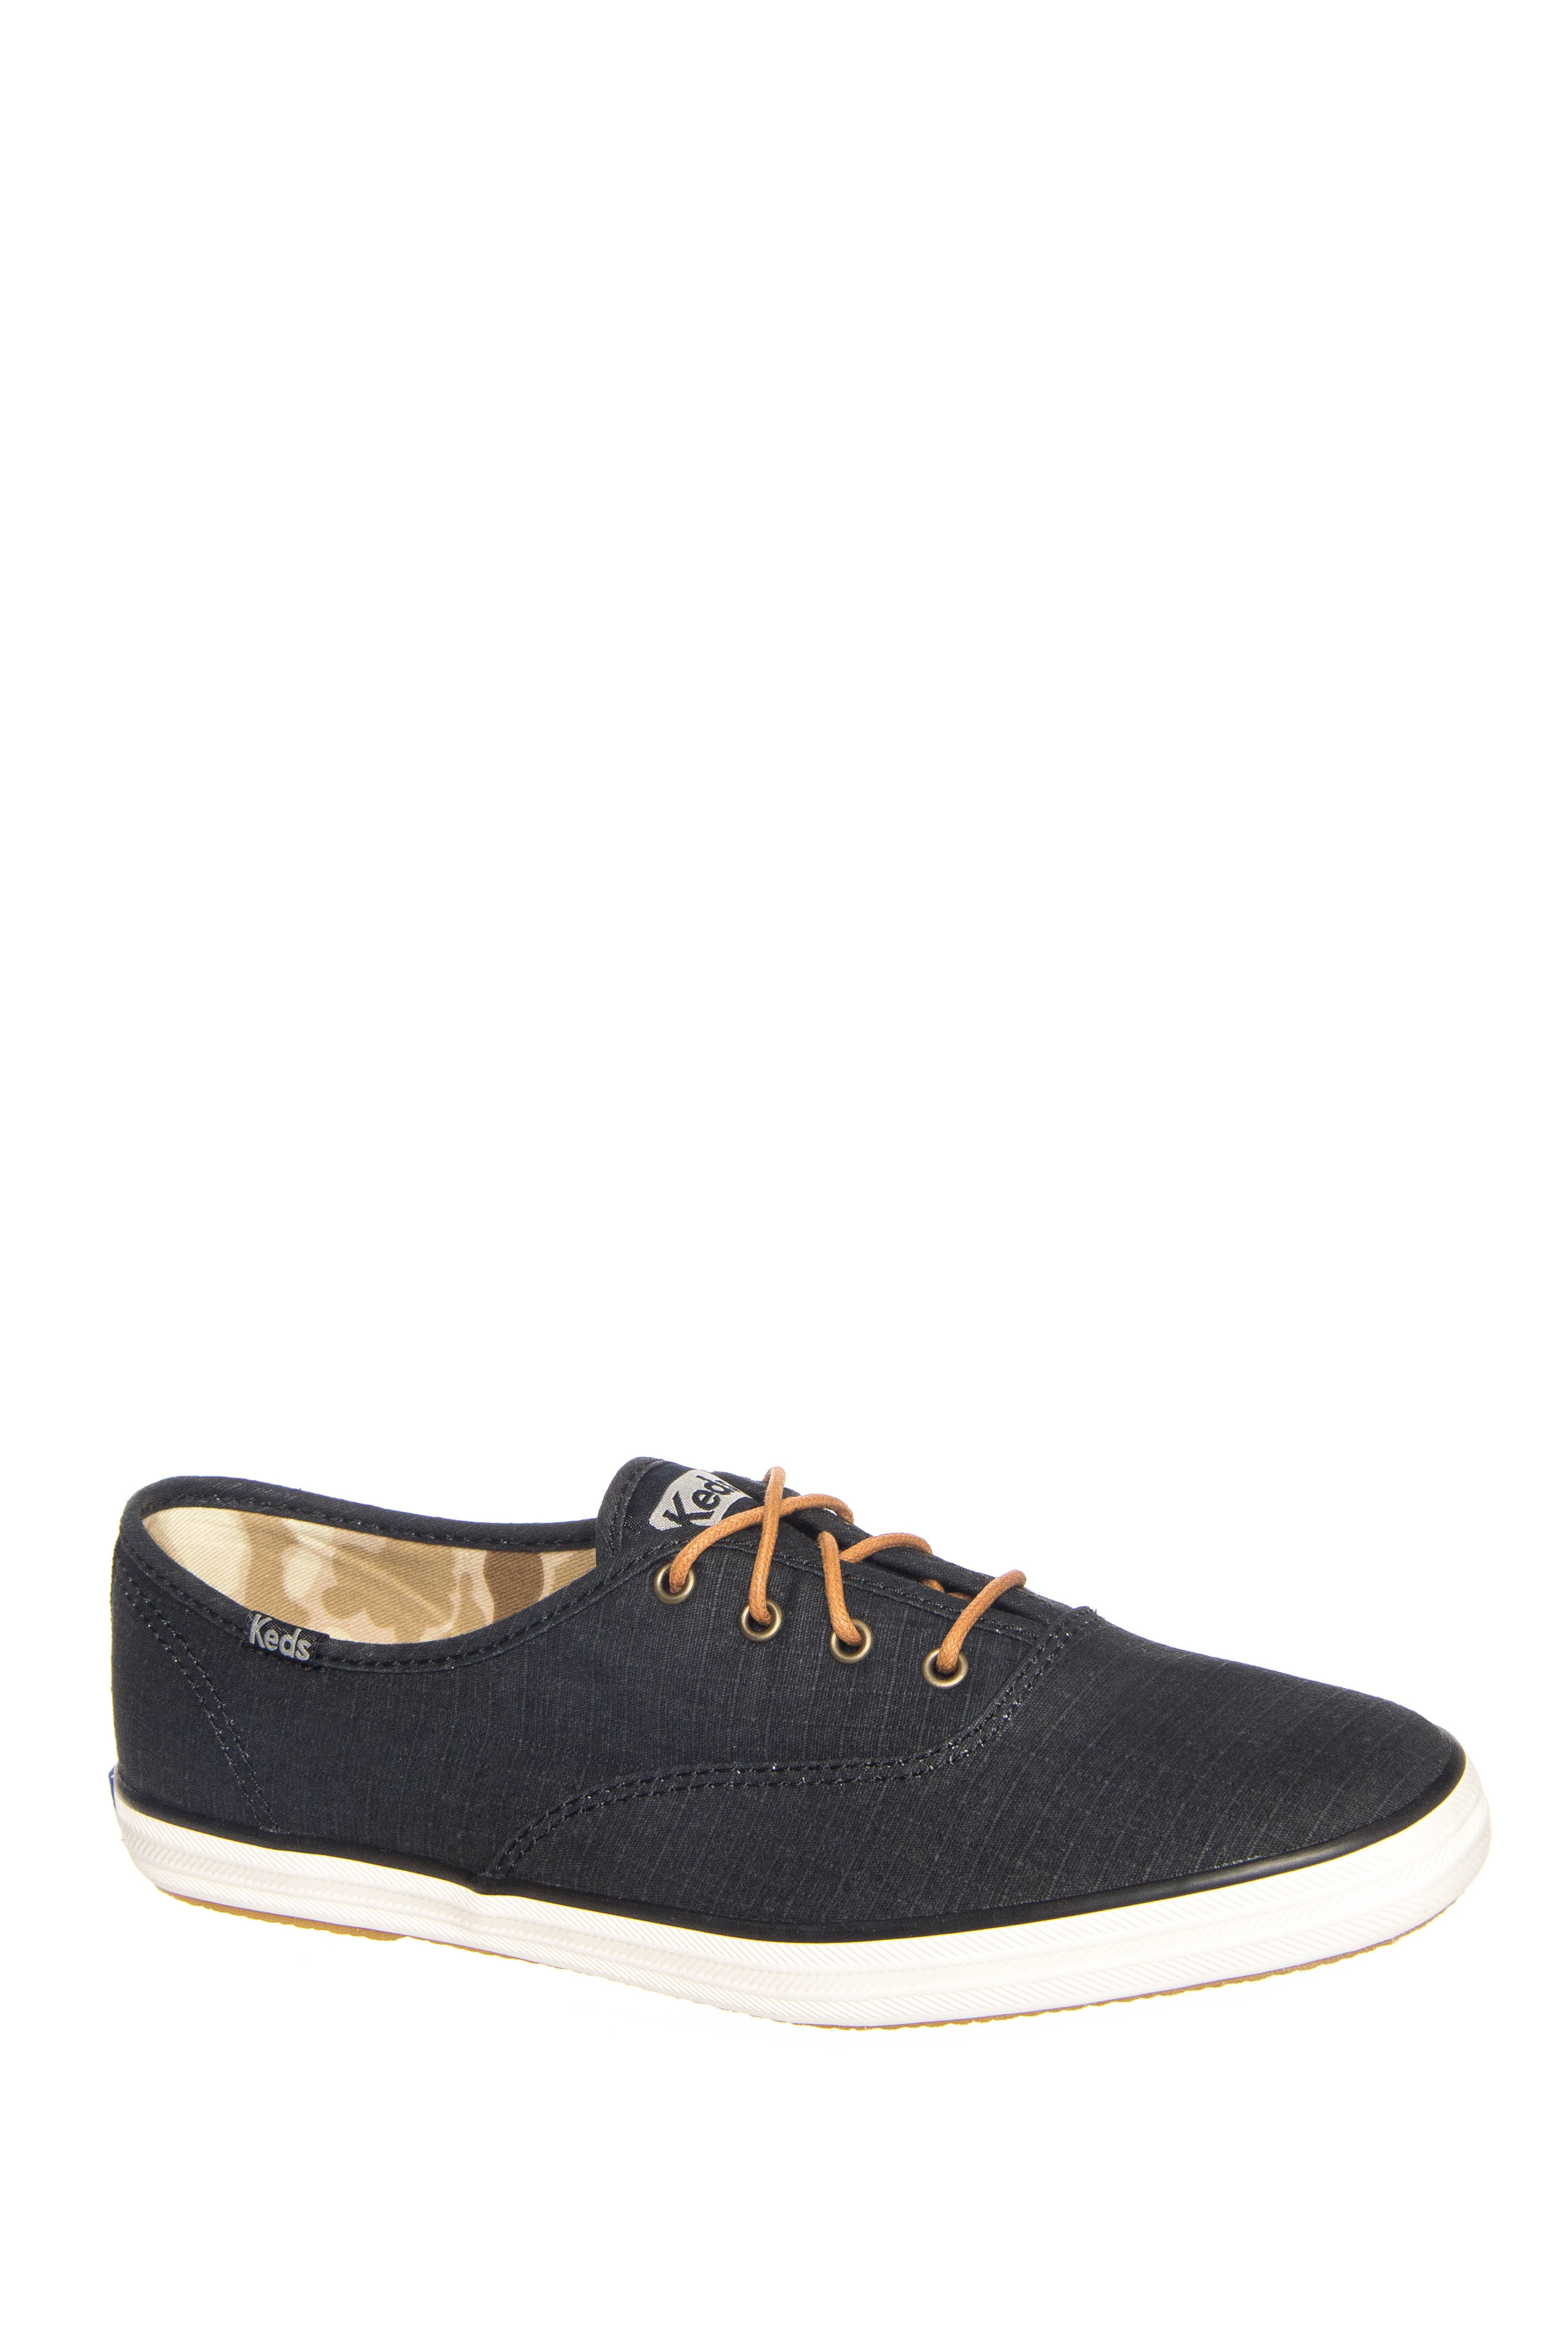 Keds Champion Ripstop Low Top Sneakers - Black